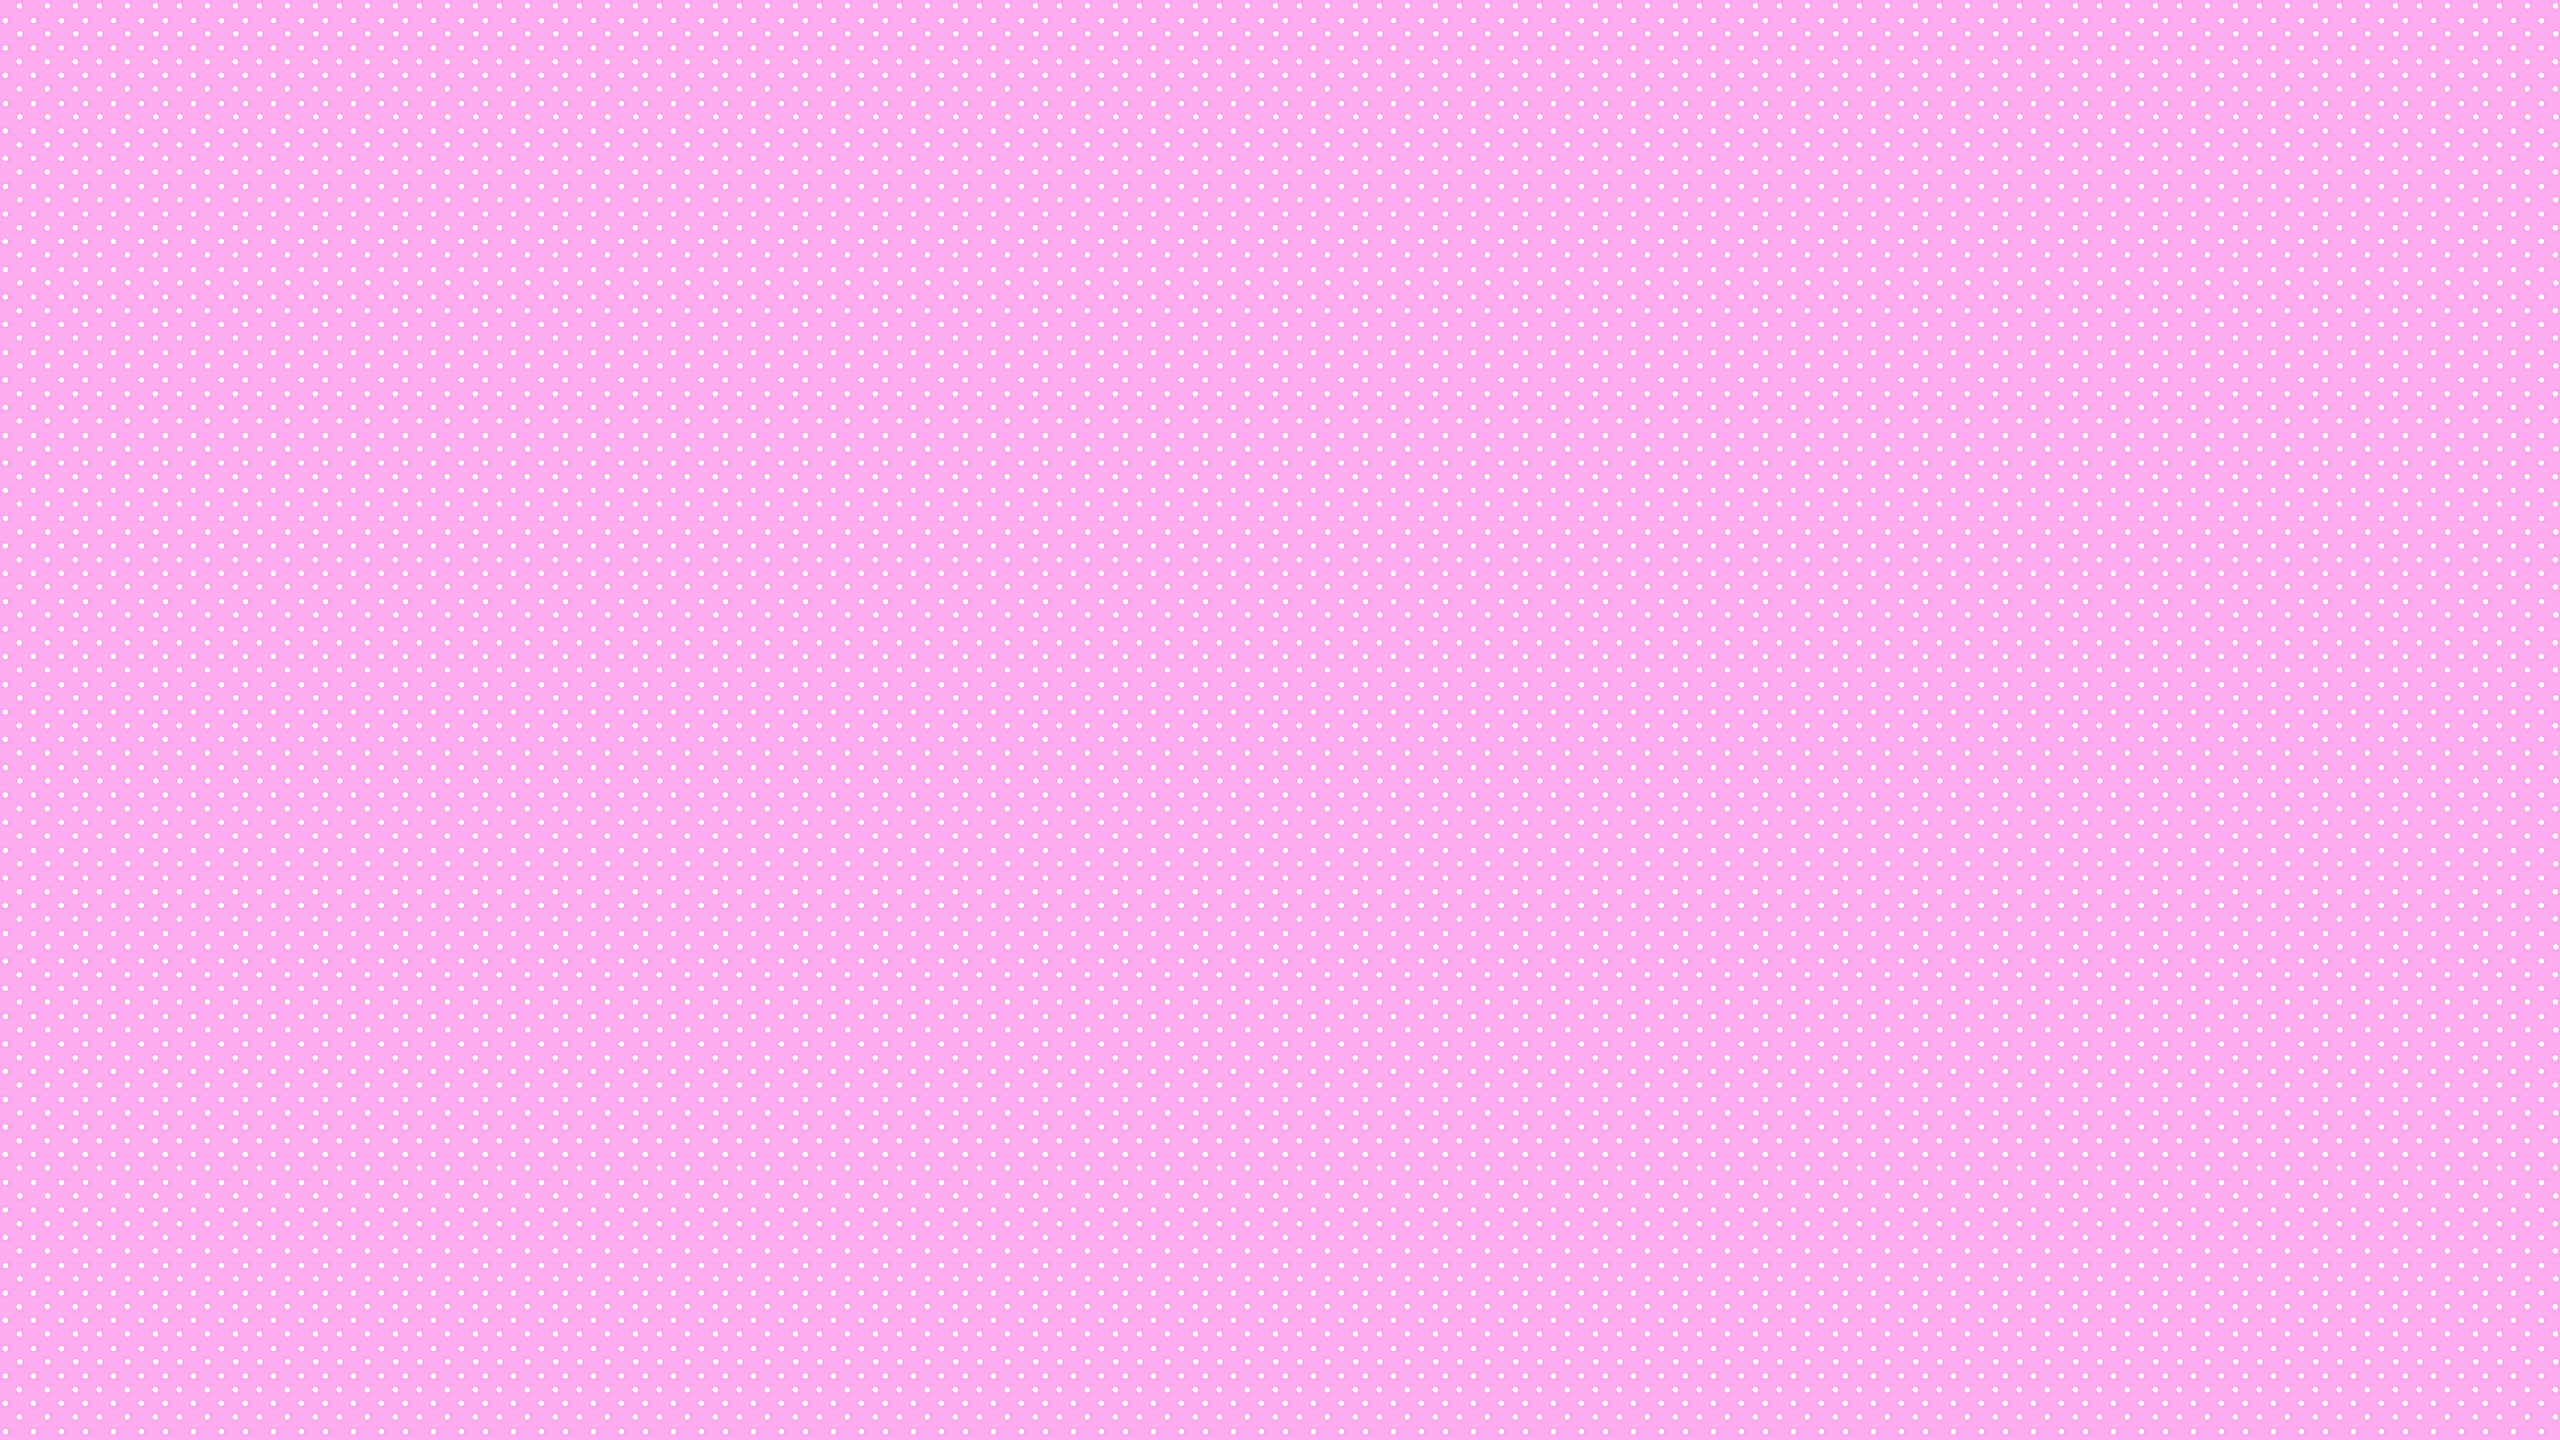 Background Tumblr Pink Download Iphone